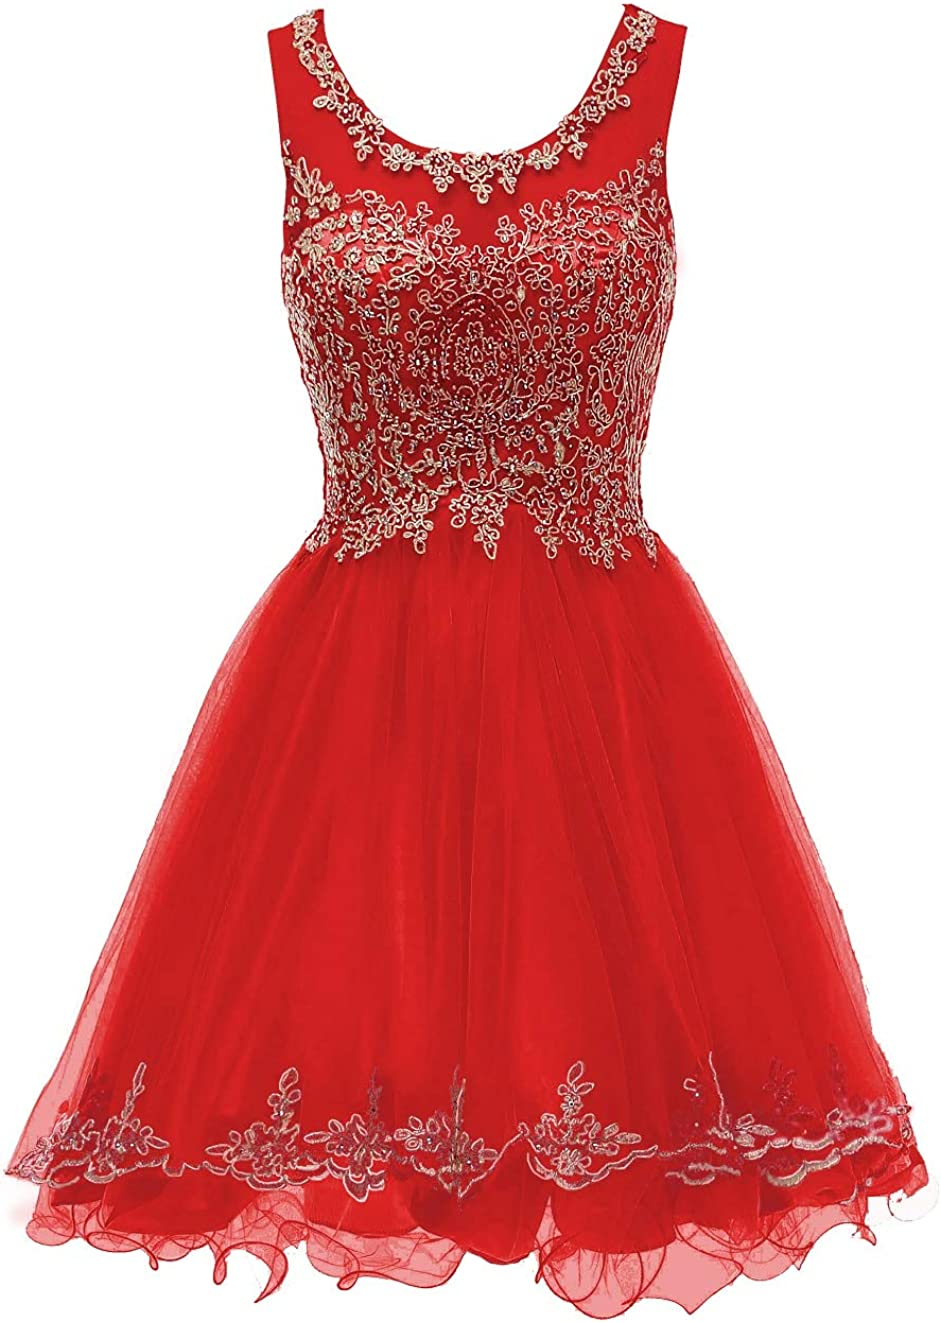 WDING Short Prom Dresses For Juniors Lace Appliques Tulle Homecoming Dress